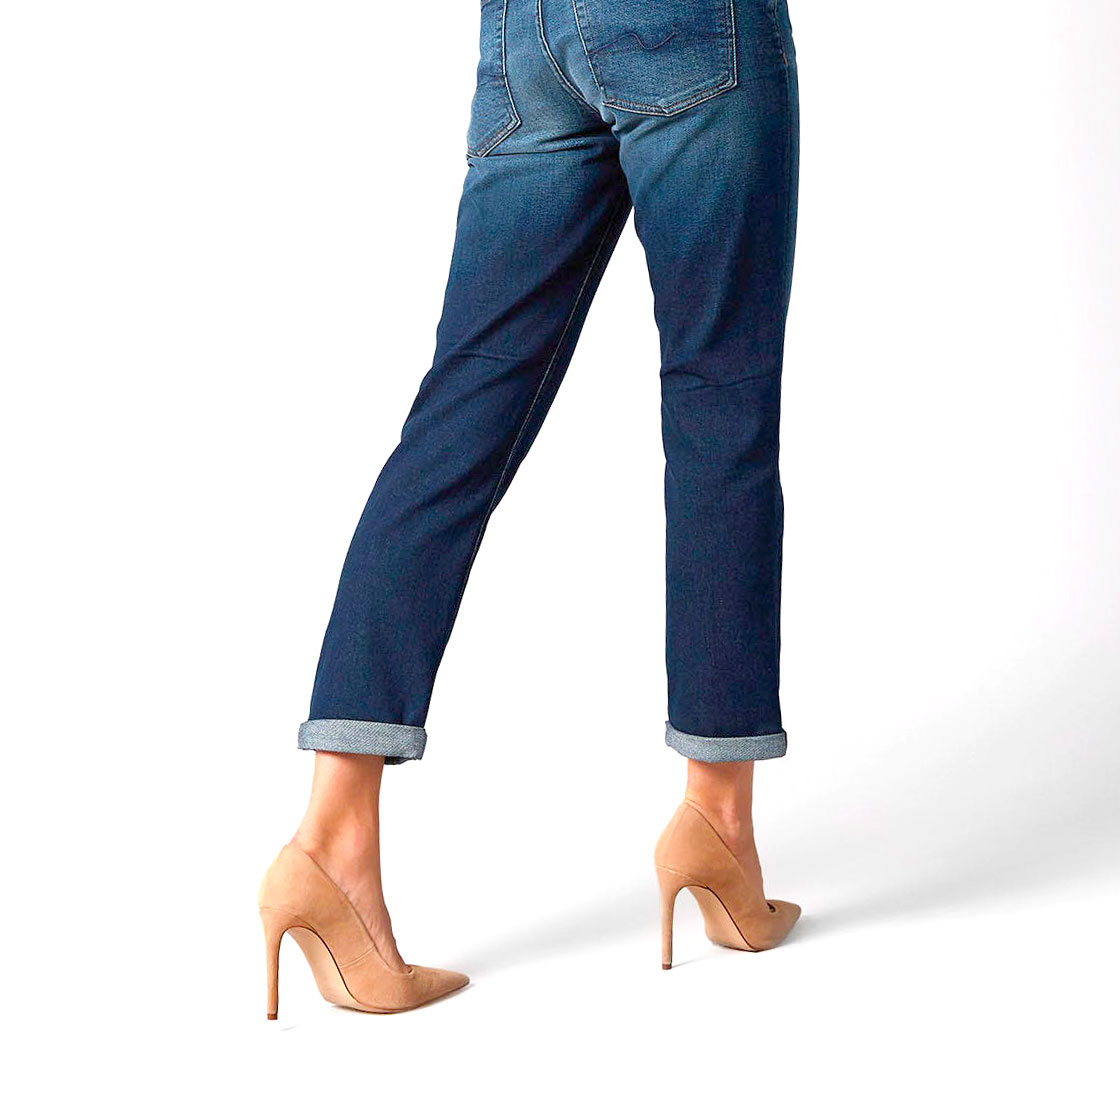 Walking with style wearing Jeans